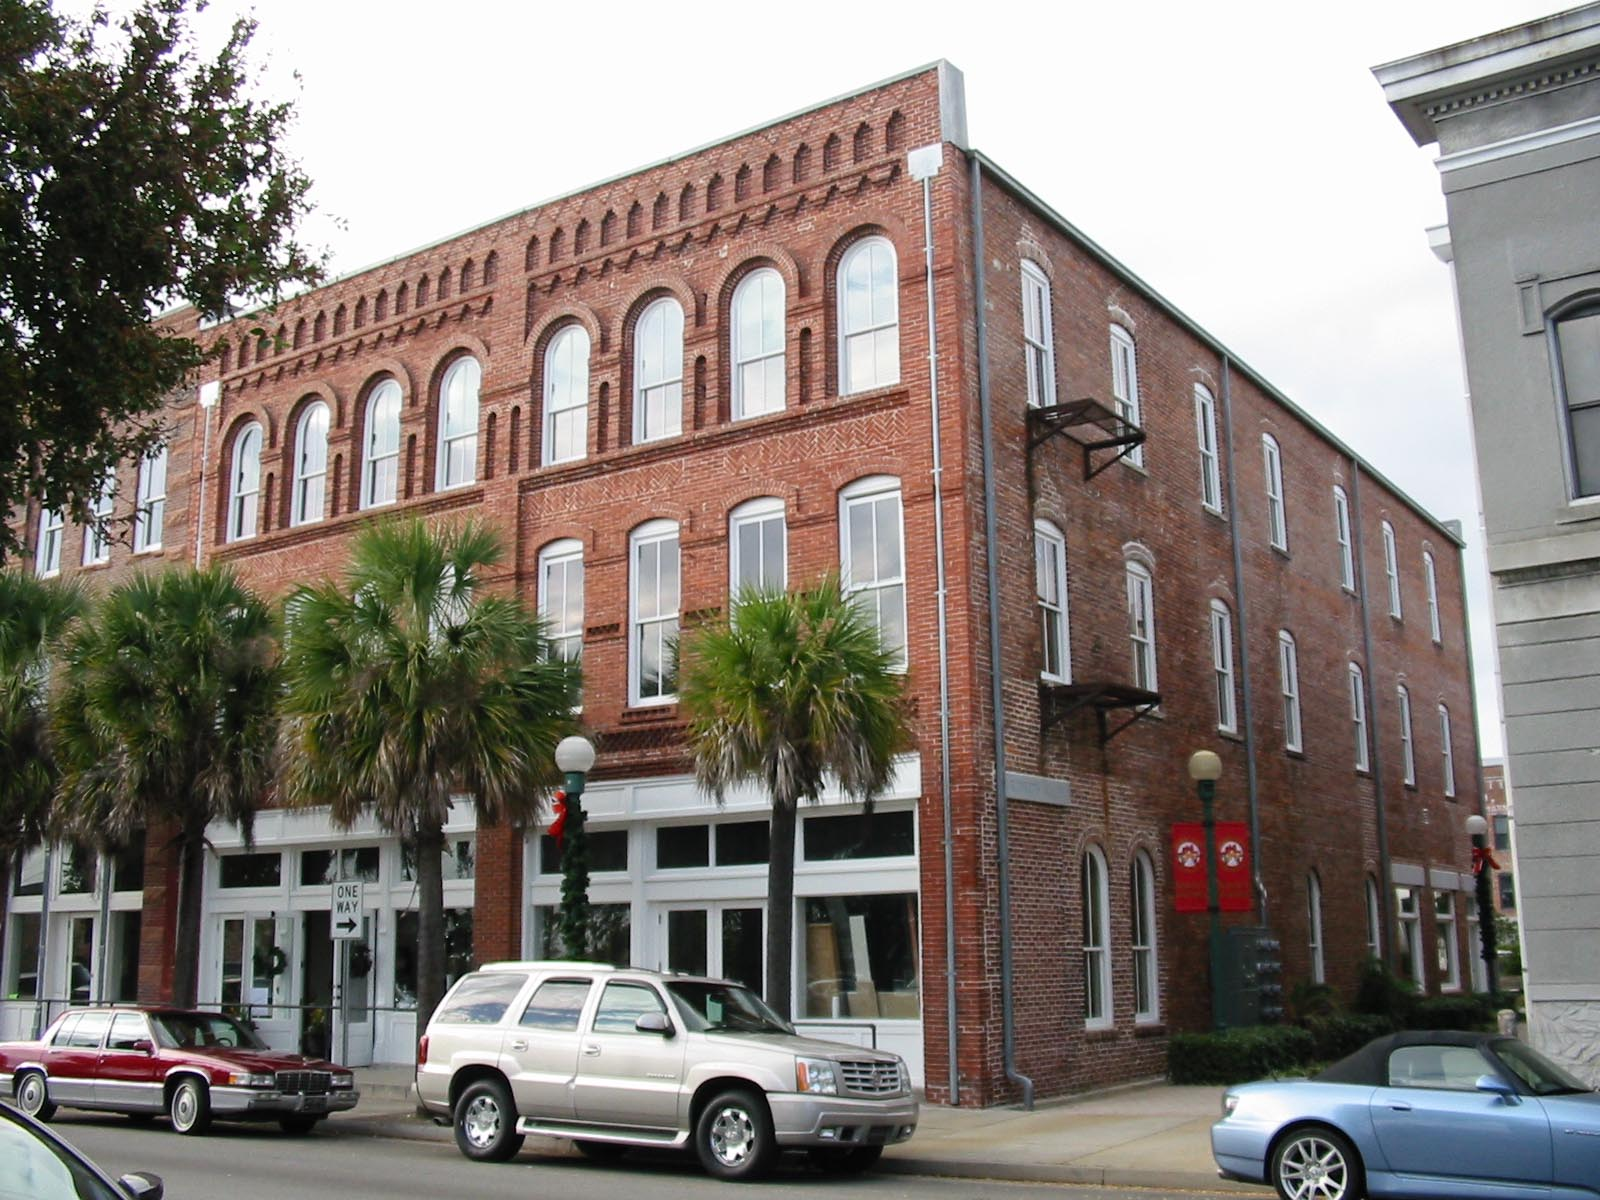 After 40 years of being vacant, the Roberts Building in downtown Valdosta, Georgia, was restored in 2009 as part of redevelopment for mixed commercial and residential use. The building is a contributing element of the Valdosta Commercial Historic District.